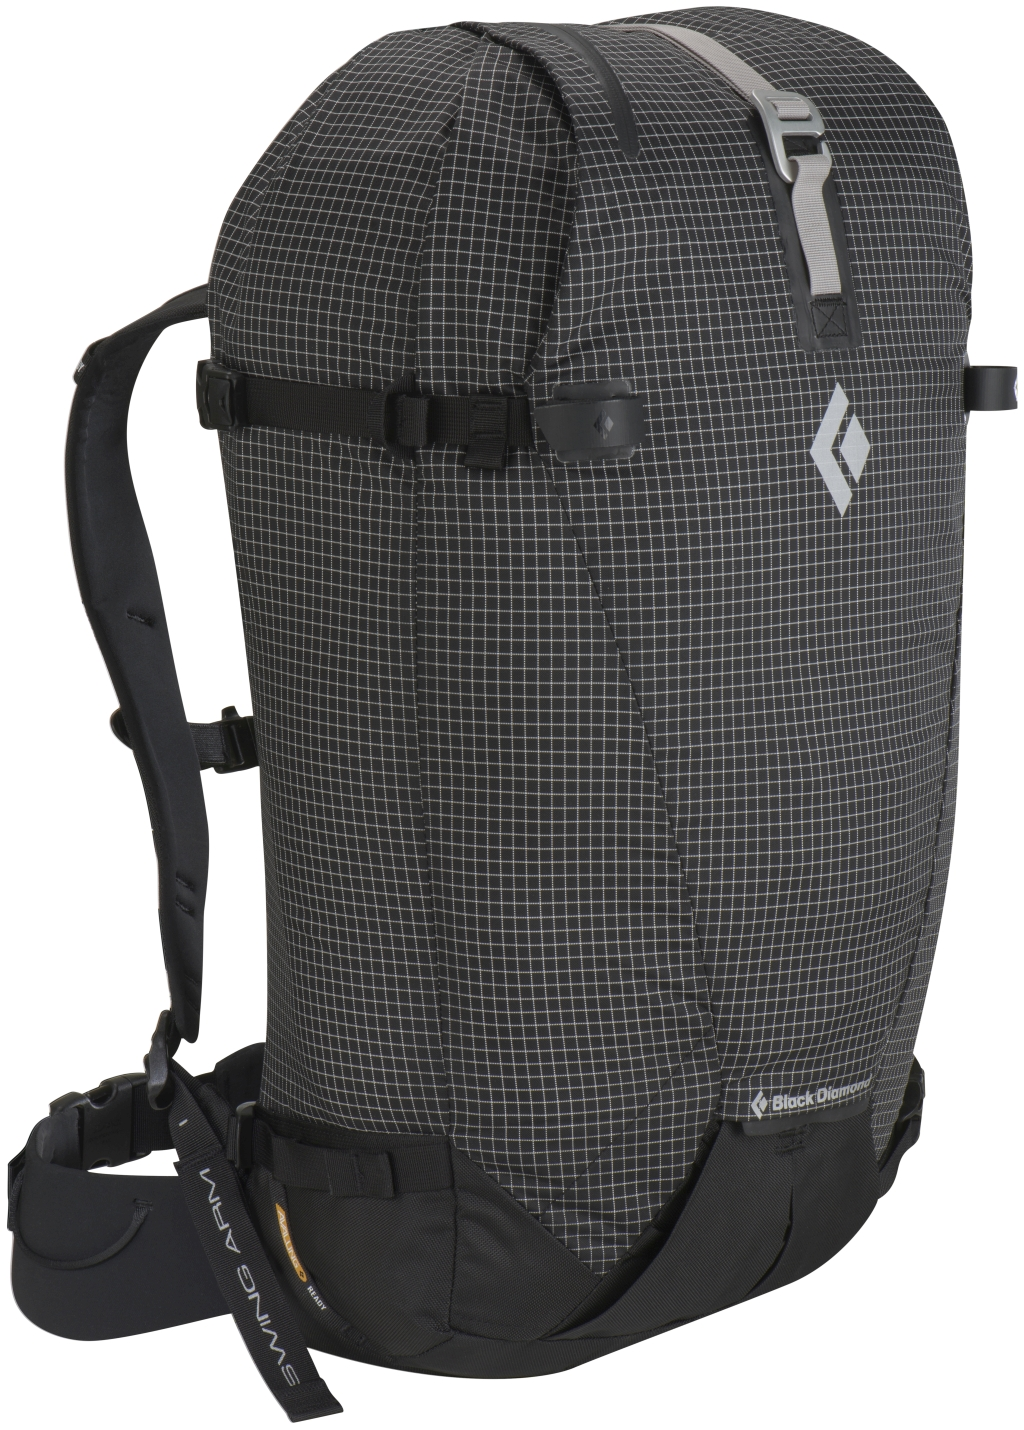 Black Diamond Cirque 35 Pack Black-30